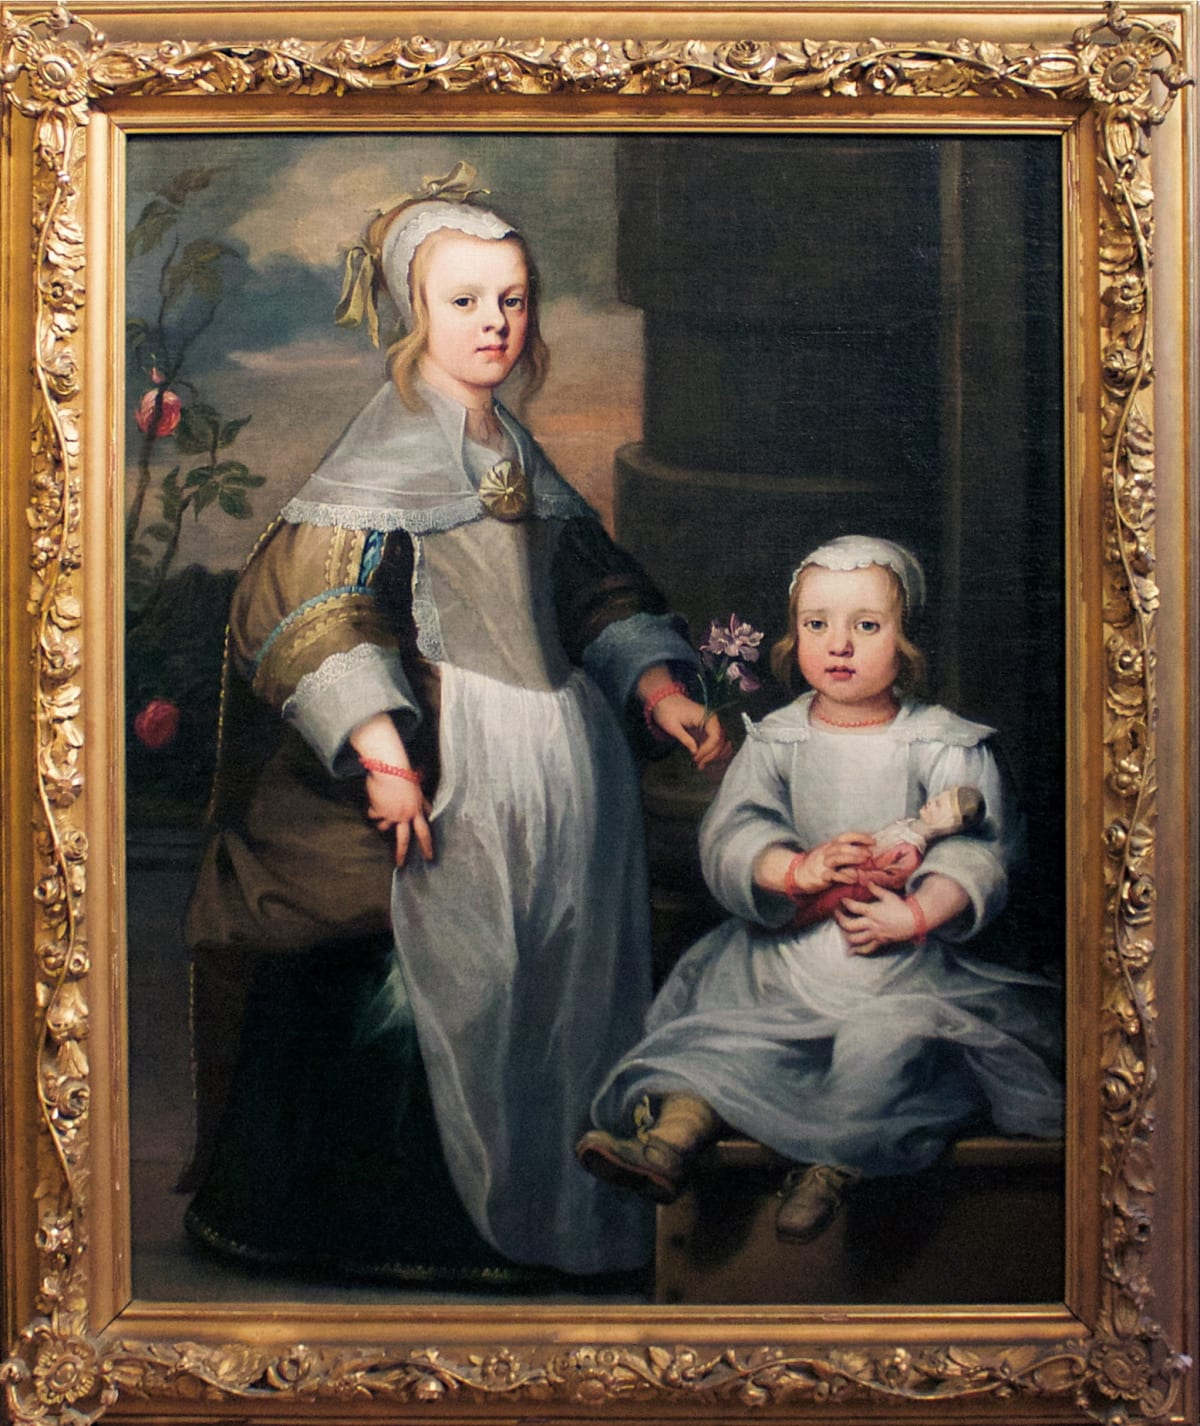 Attributed to Nicolaes van Helt, called Stockade (1614 – 1669) A pair of unknown Dutch siblings, c.1650 Oil on unlined canvas 46 ½ x 37 in. (118 x 94 cm.)